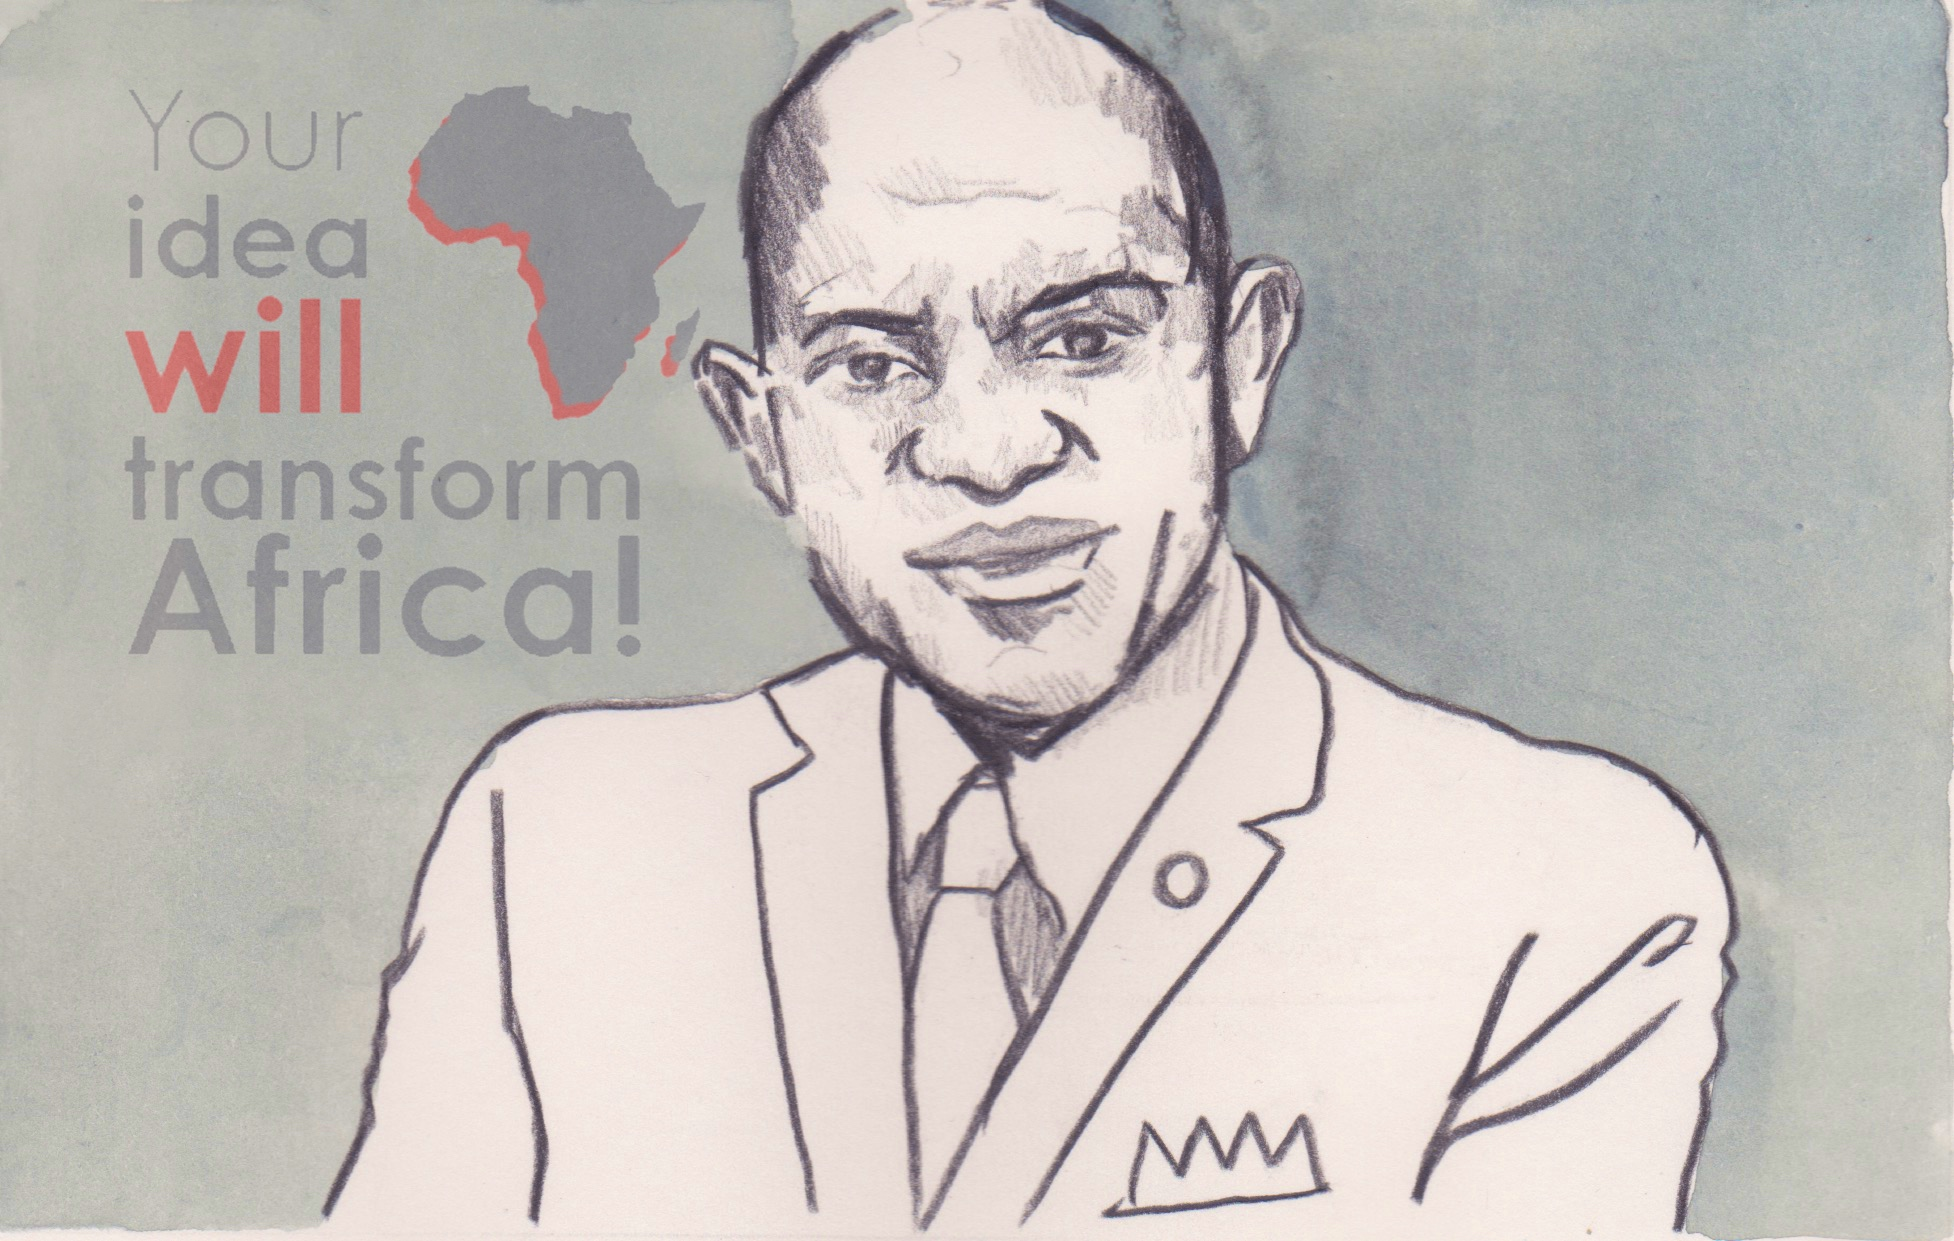 24/03/15Tony Elumelo is preparing to unveil Africa's newest 1000 entrepreneurs and their ideas after 20,000 candidates from 52 countries across Africa tendered their applications to participate in the Tony Elumelo Entrepreneurship programme